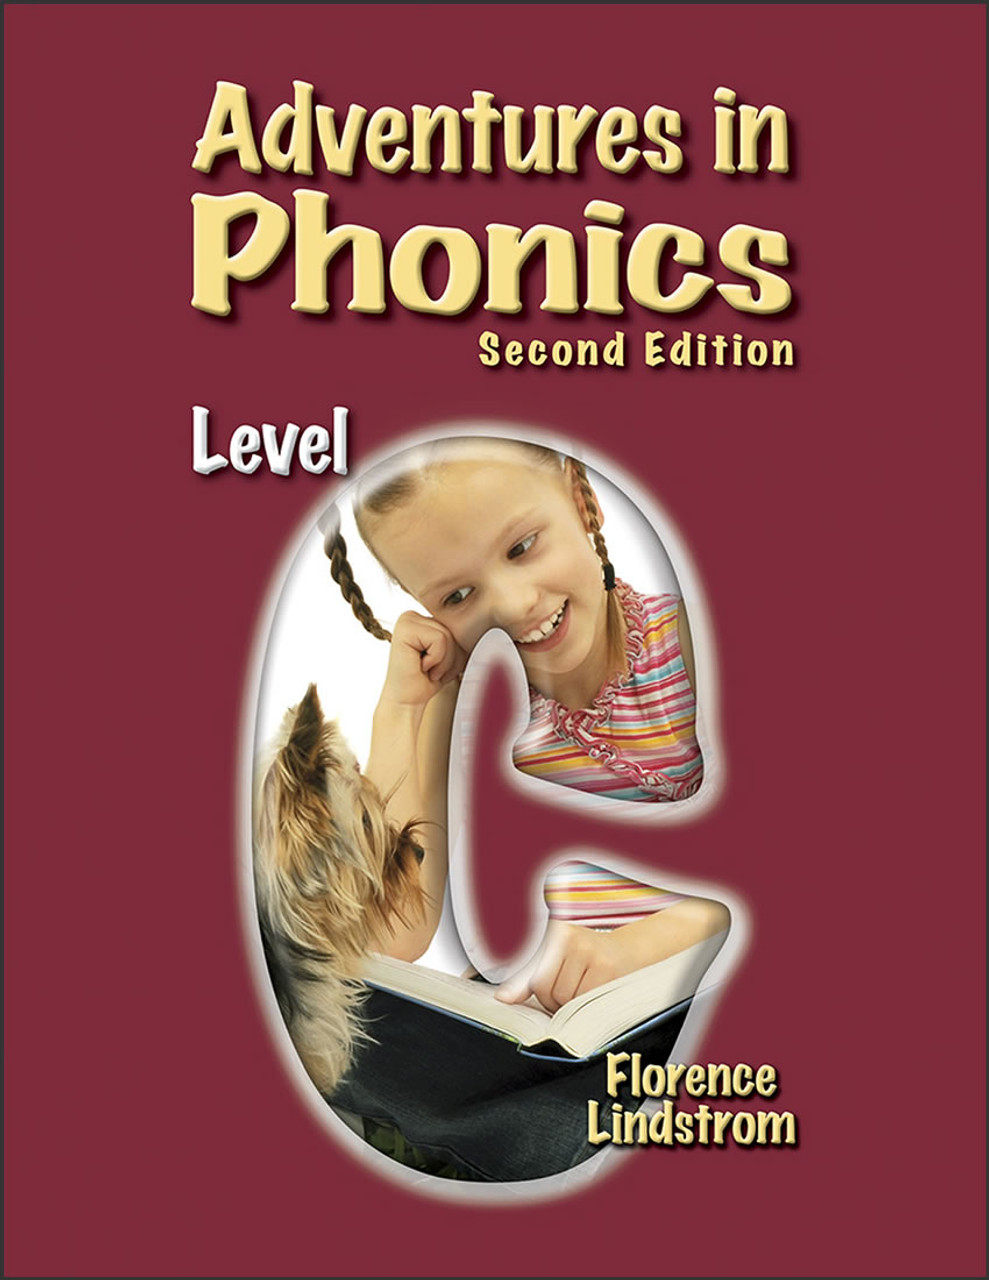 Adventures in Phonics Level C, 2nd edition